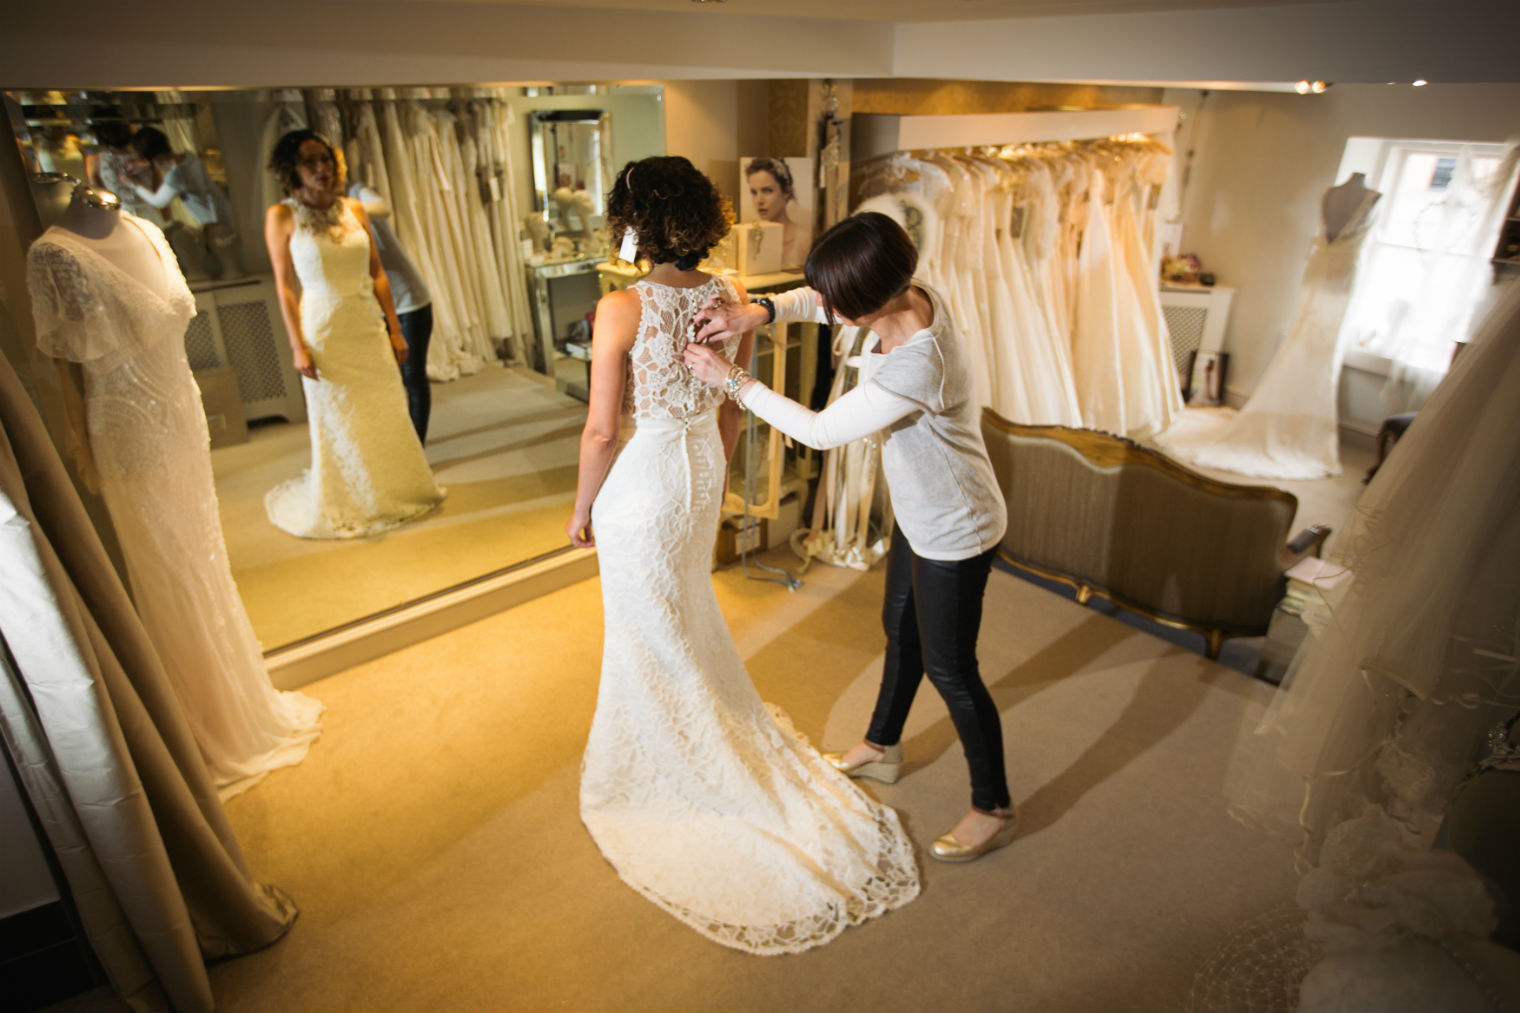 Sally White owner of White Bride bridal boutique in West Wales